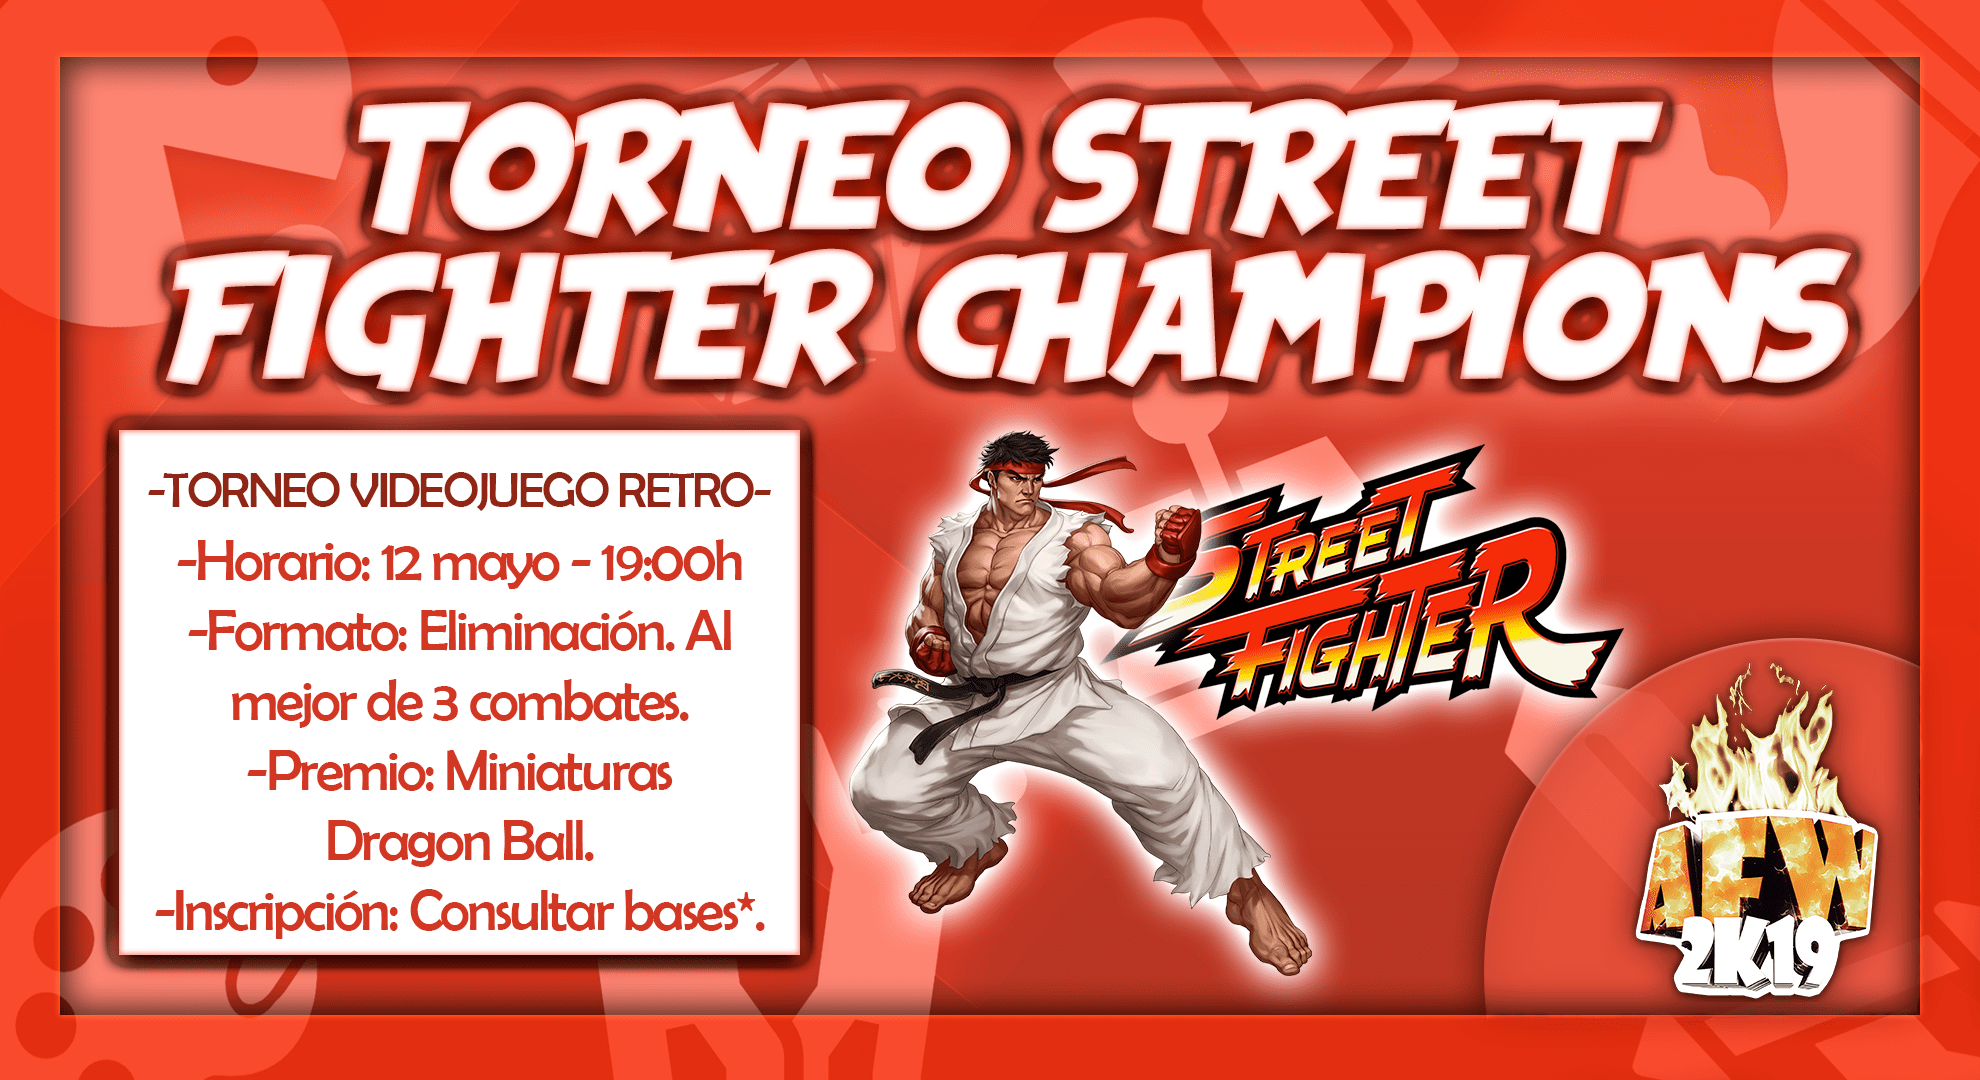 Torneo_Street_figther_champions